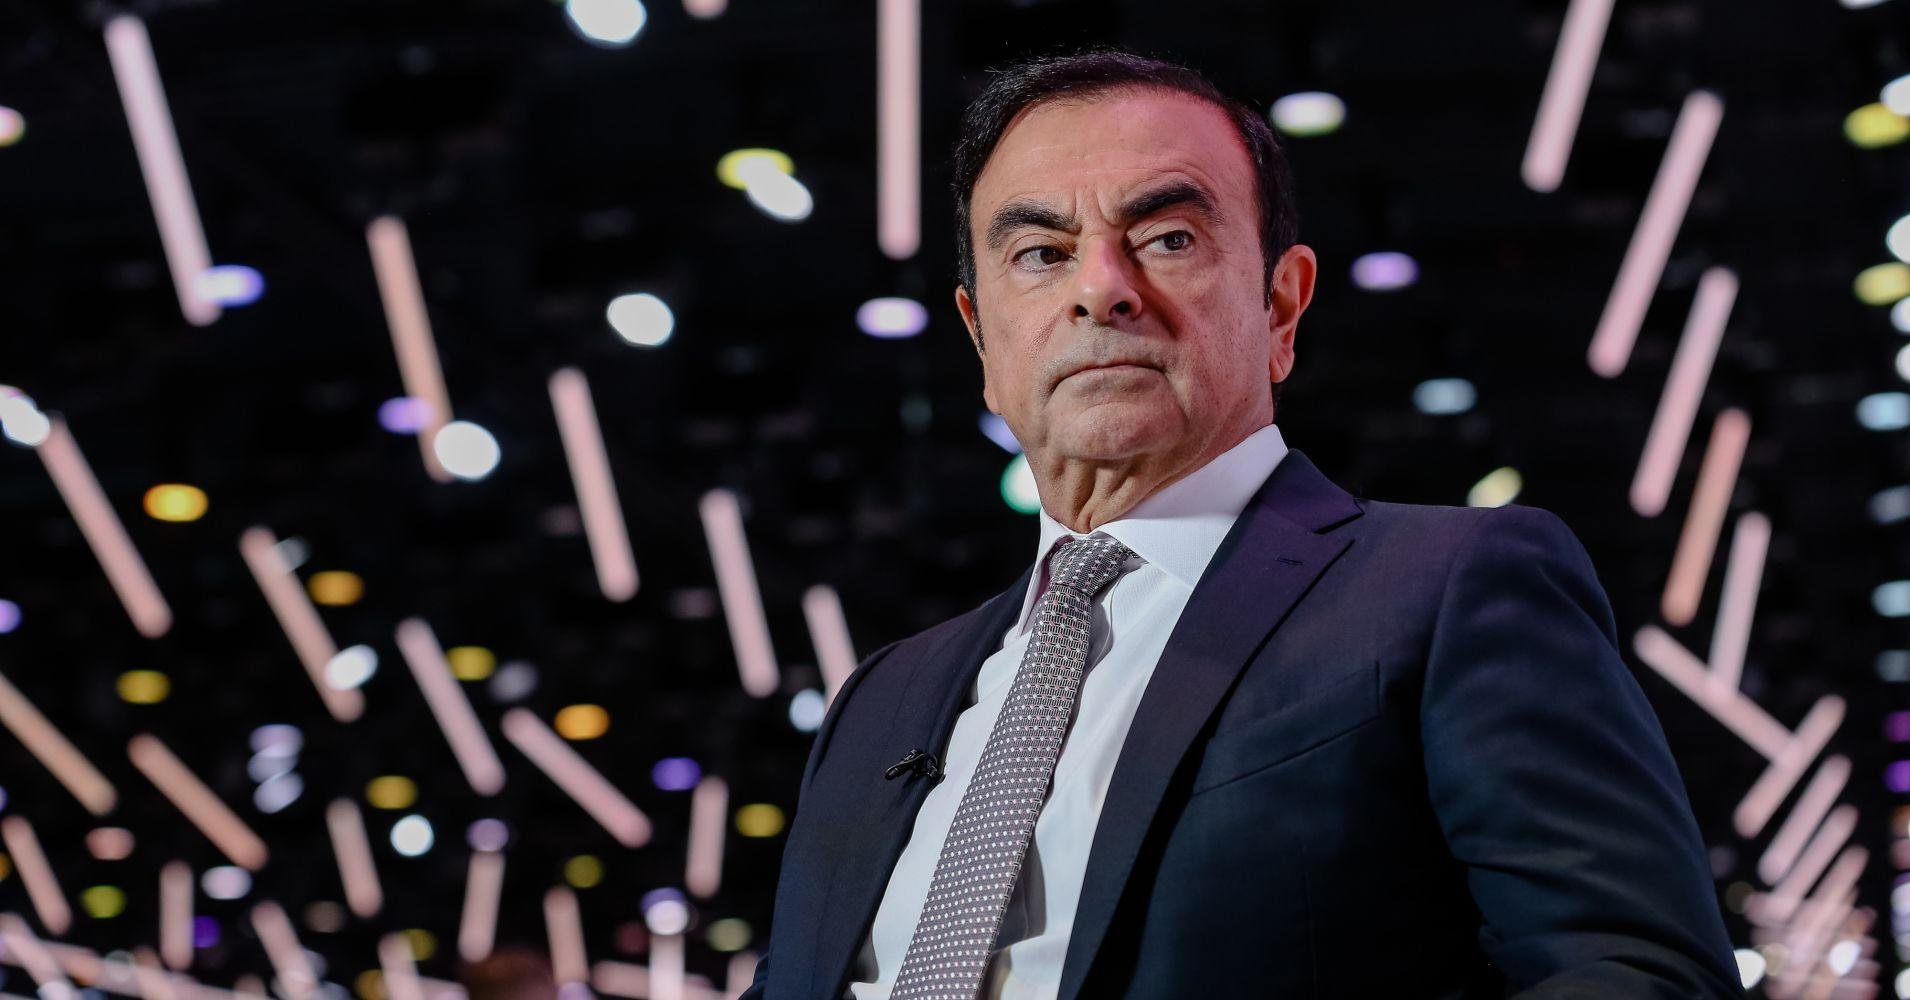 Nissan reportedly wants to keep former Chairman Ghosn and his family away from his safe in Brazil